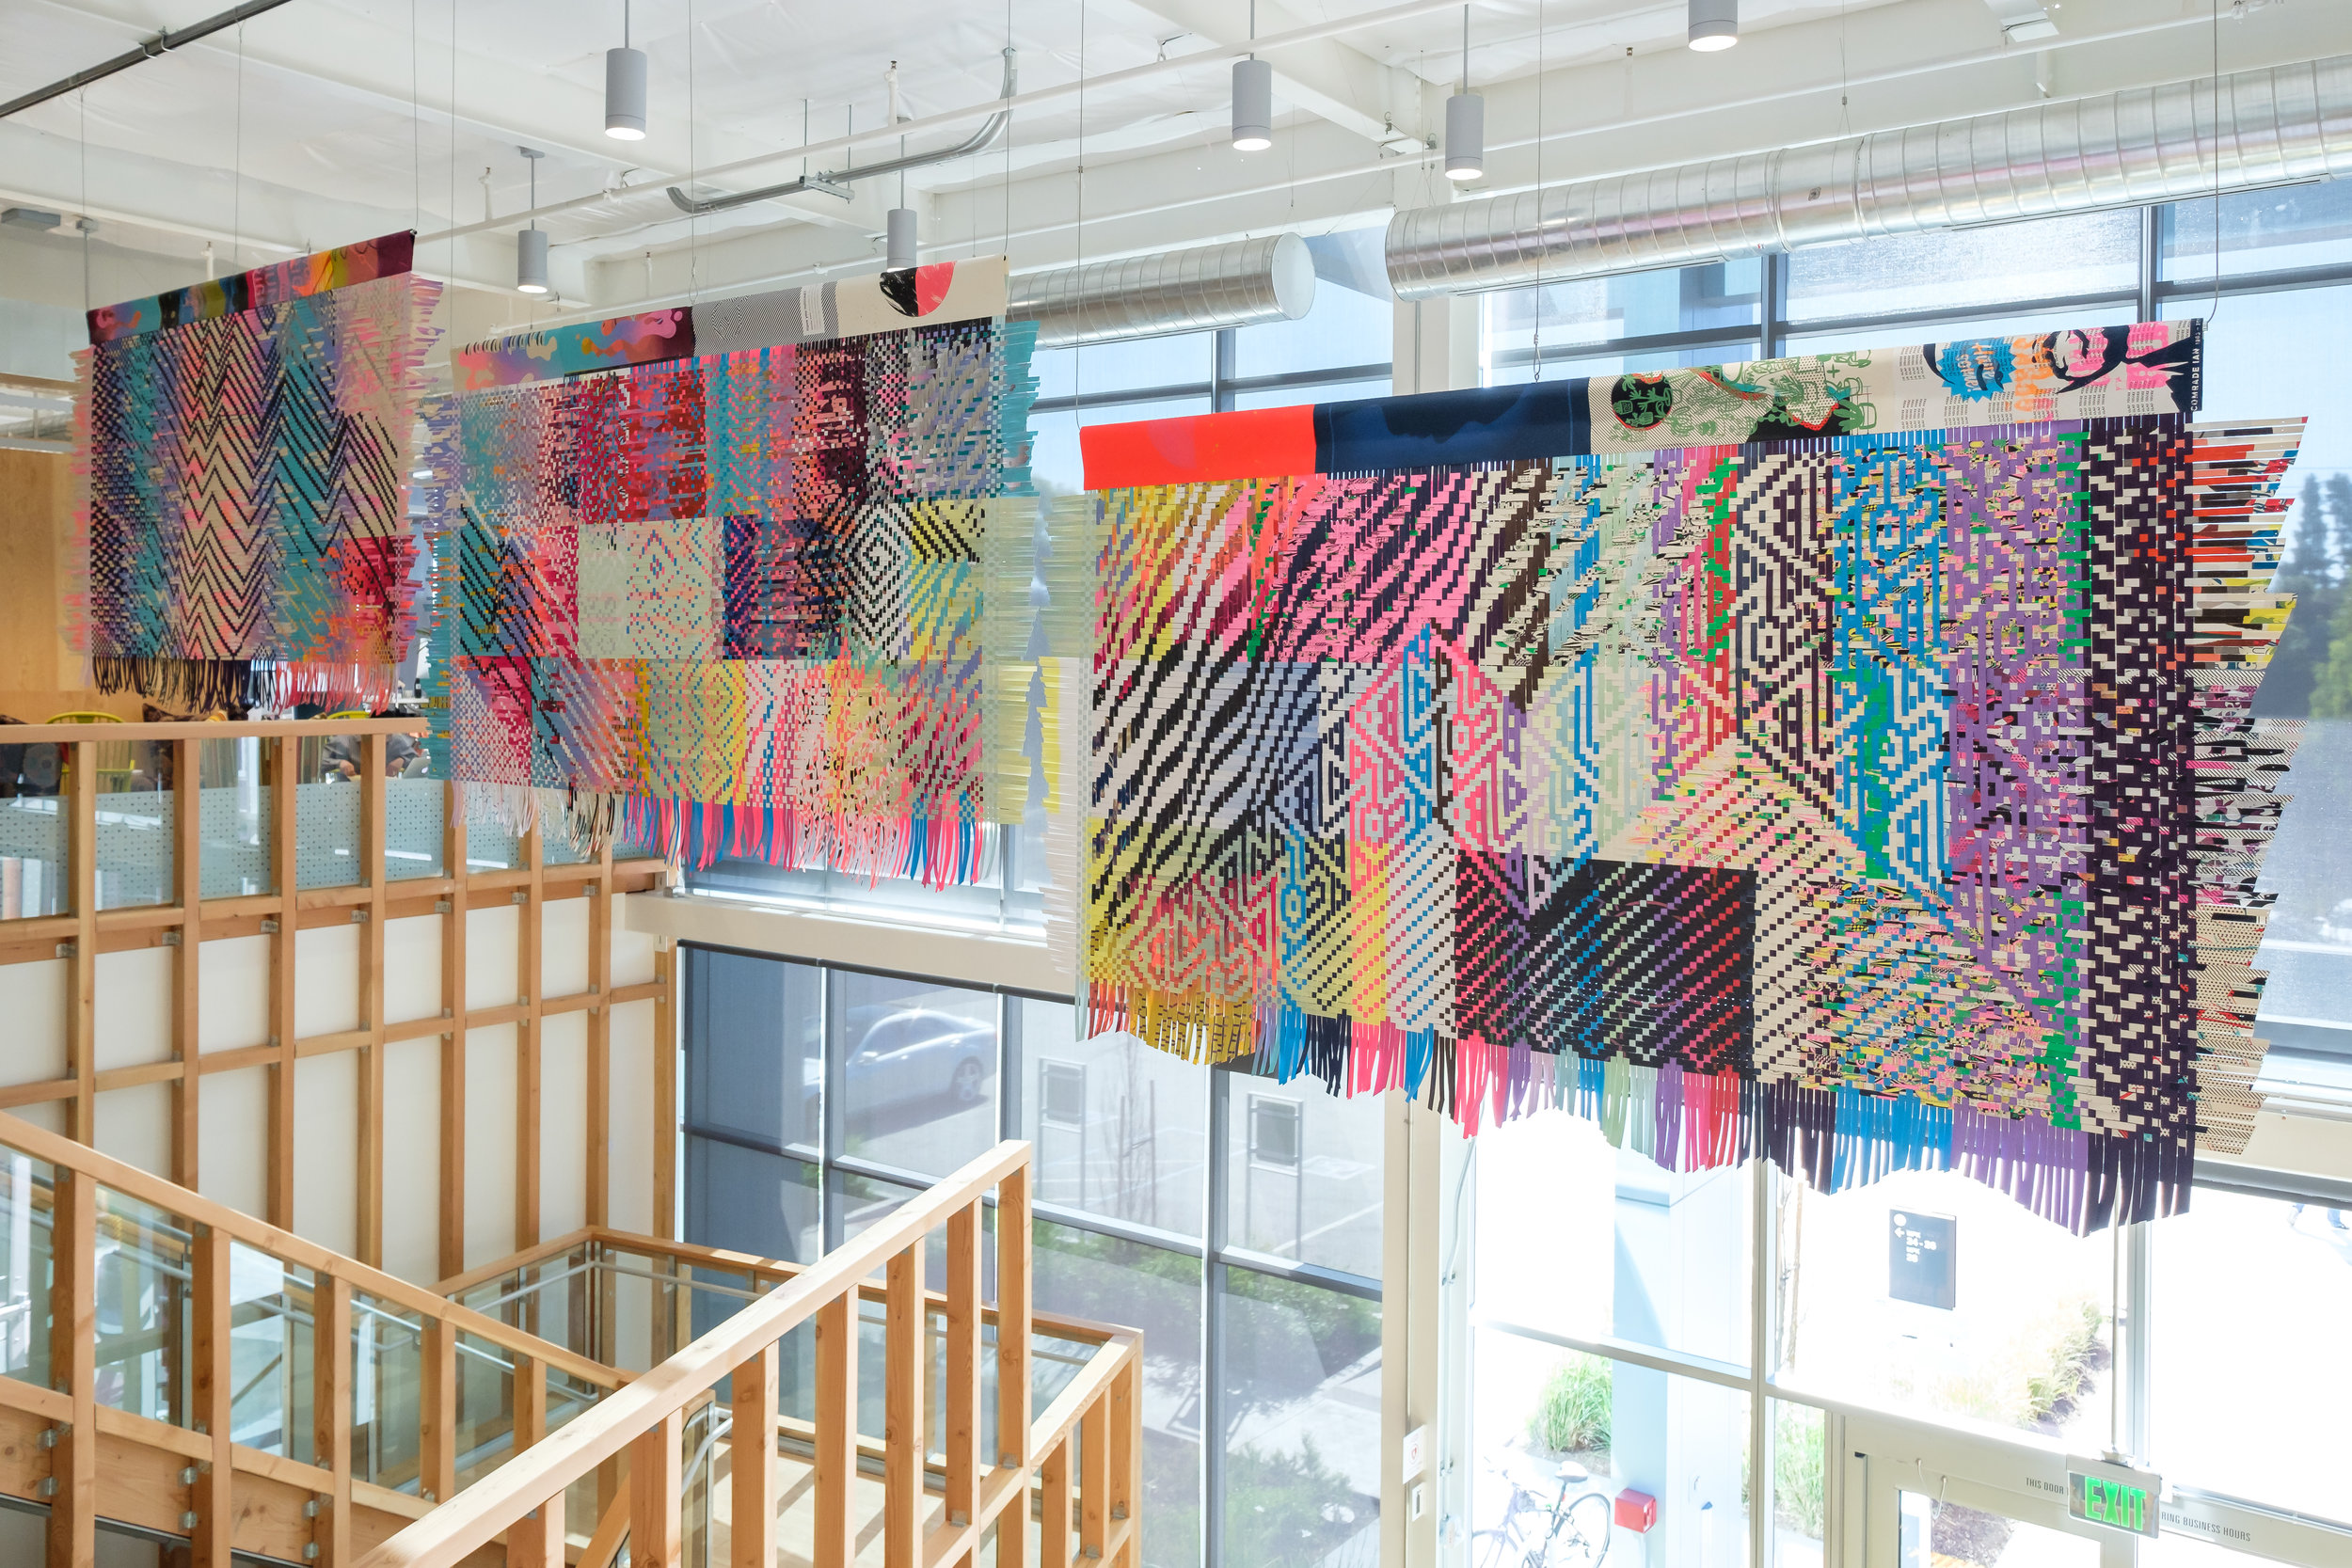 FB, 2018, woven silkscreen posters, 27ft x 8.5ft, Commissioned by Facebook Artist in Residence Program